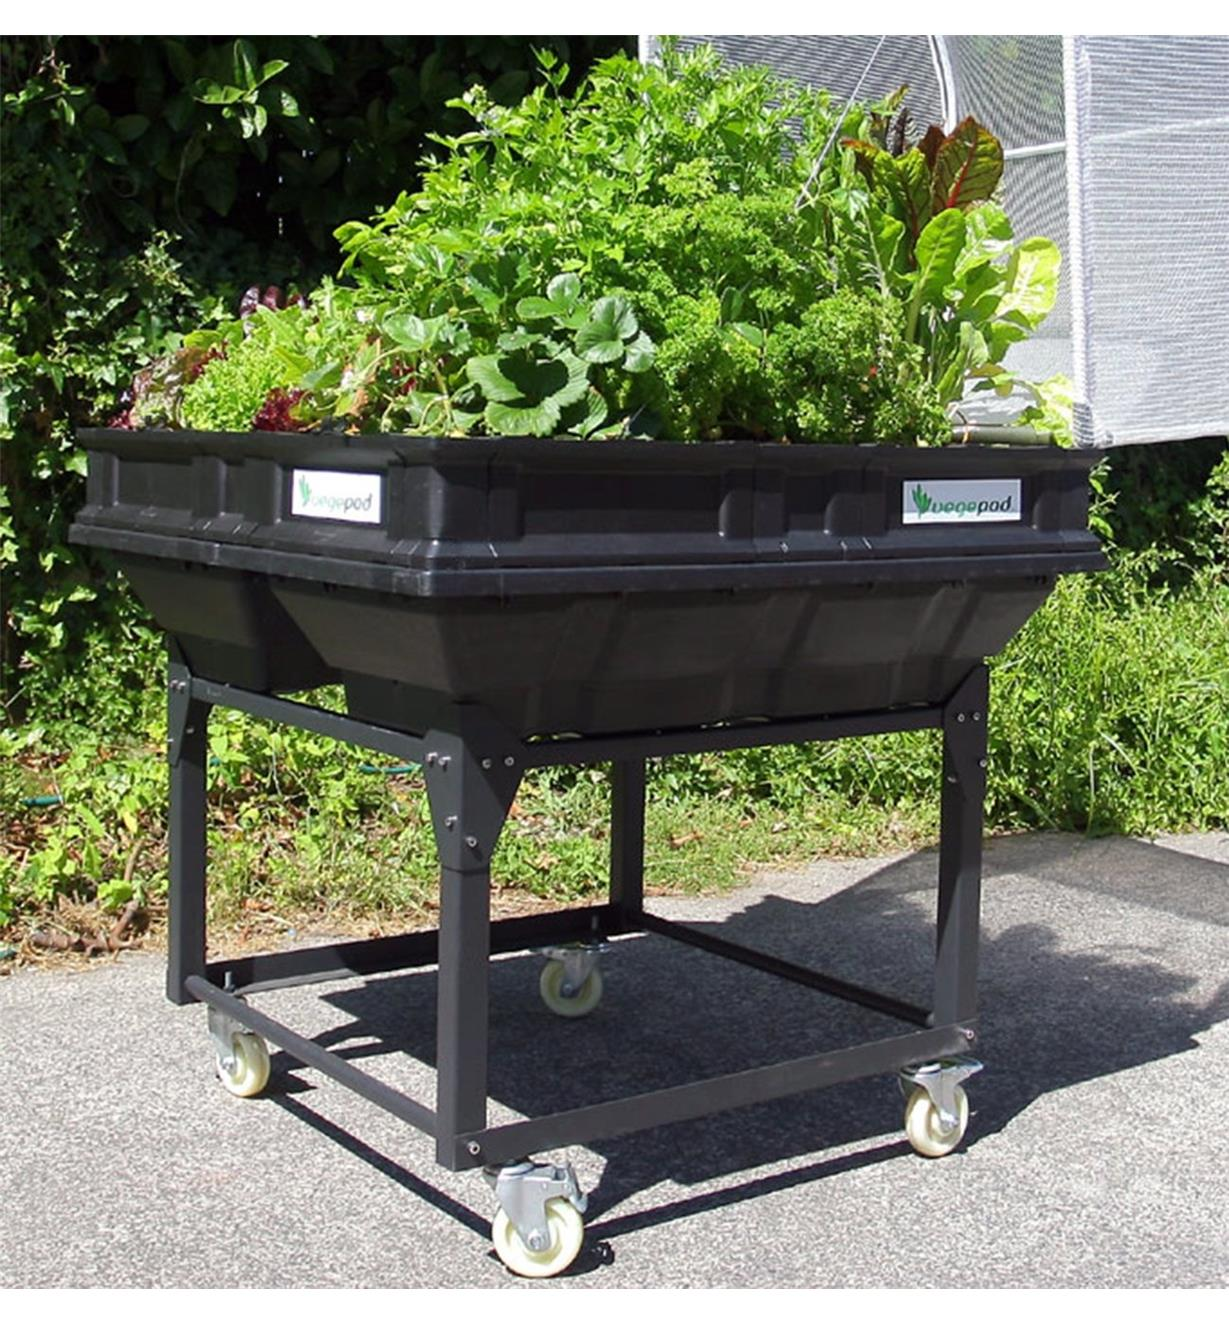 A Vegepod trolley stand supporting a medium Vegepod container garden used to grow plants on a paved surface